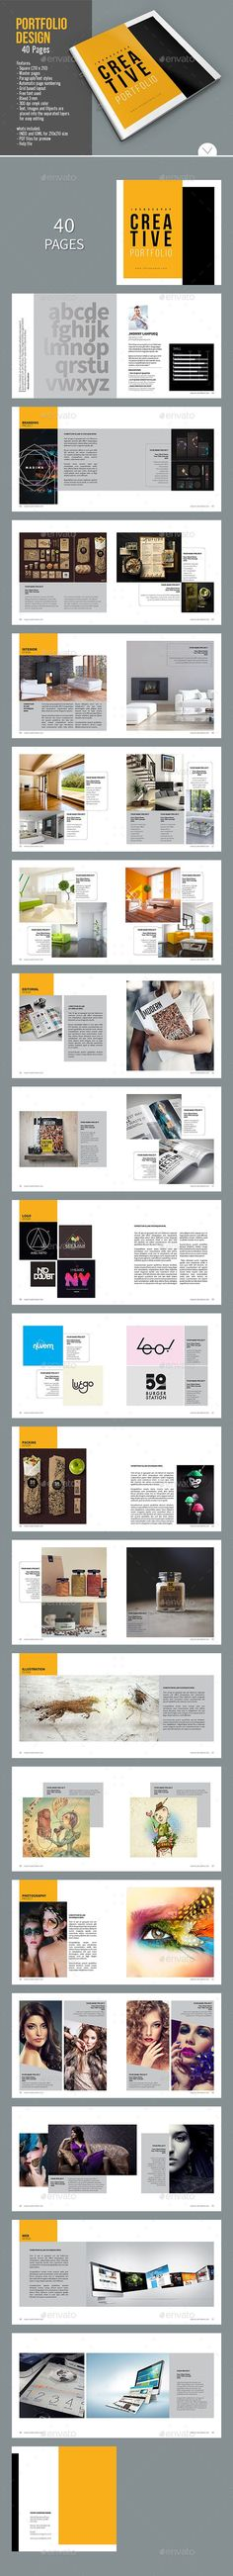 Graphic Design Portfolio Brochure Template InDesign INDD